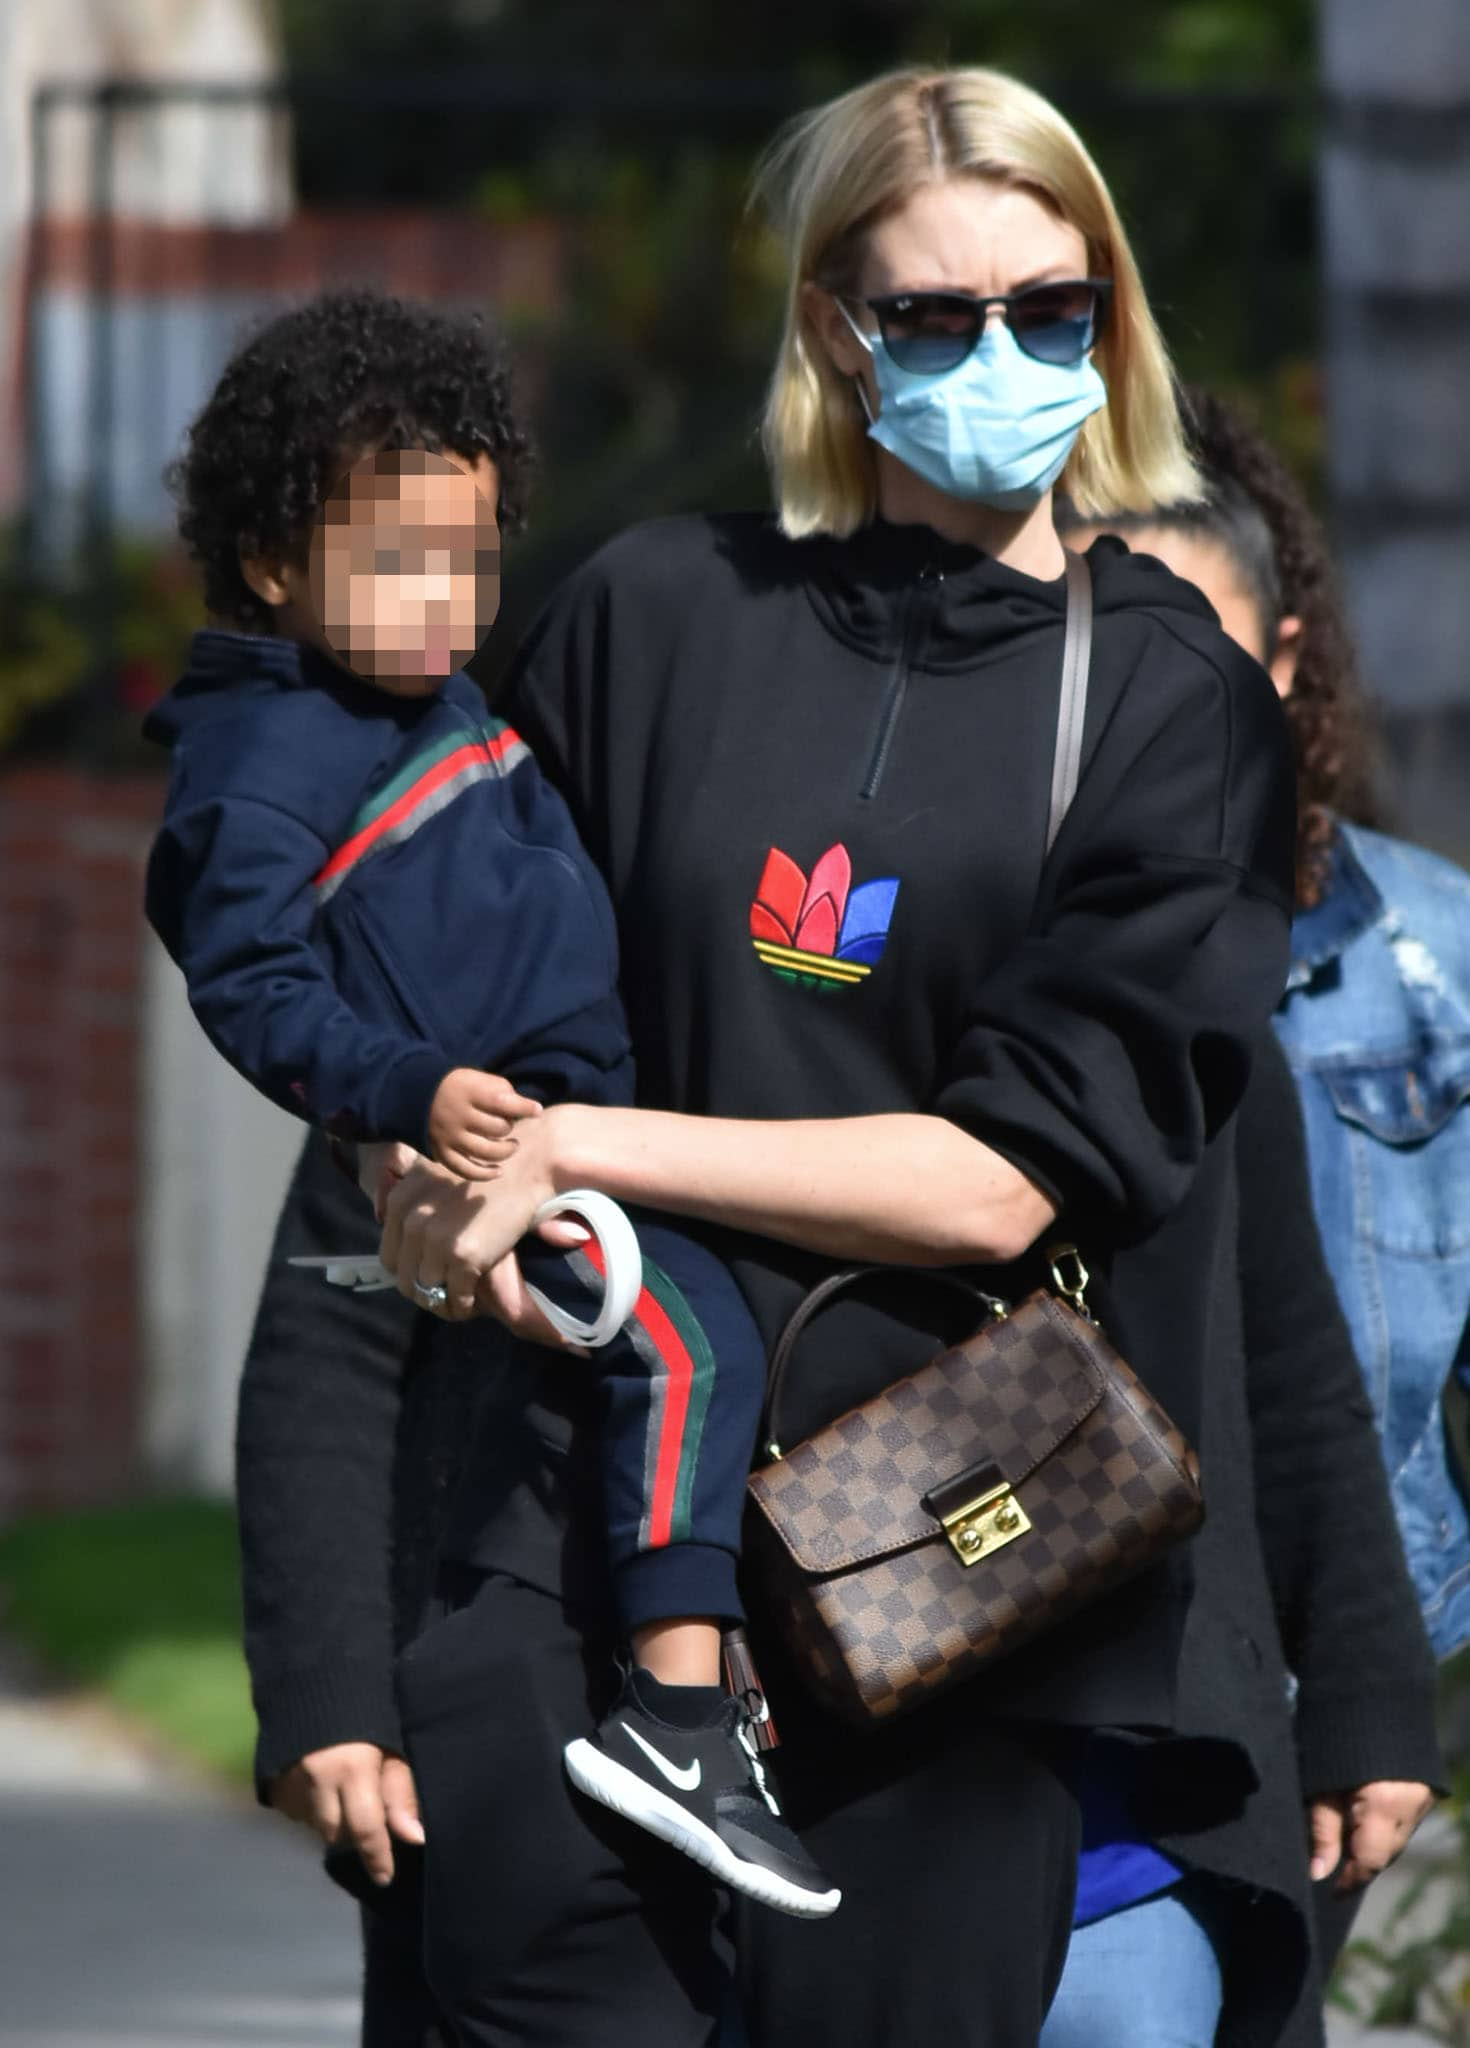 Paige Butcher steps out with son Max in Los Angeles on February 13, 2021